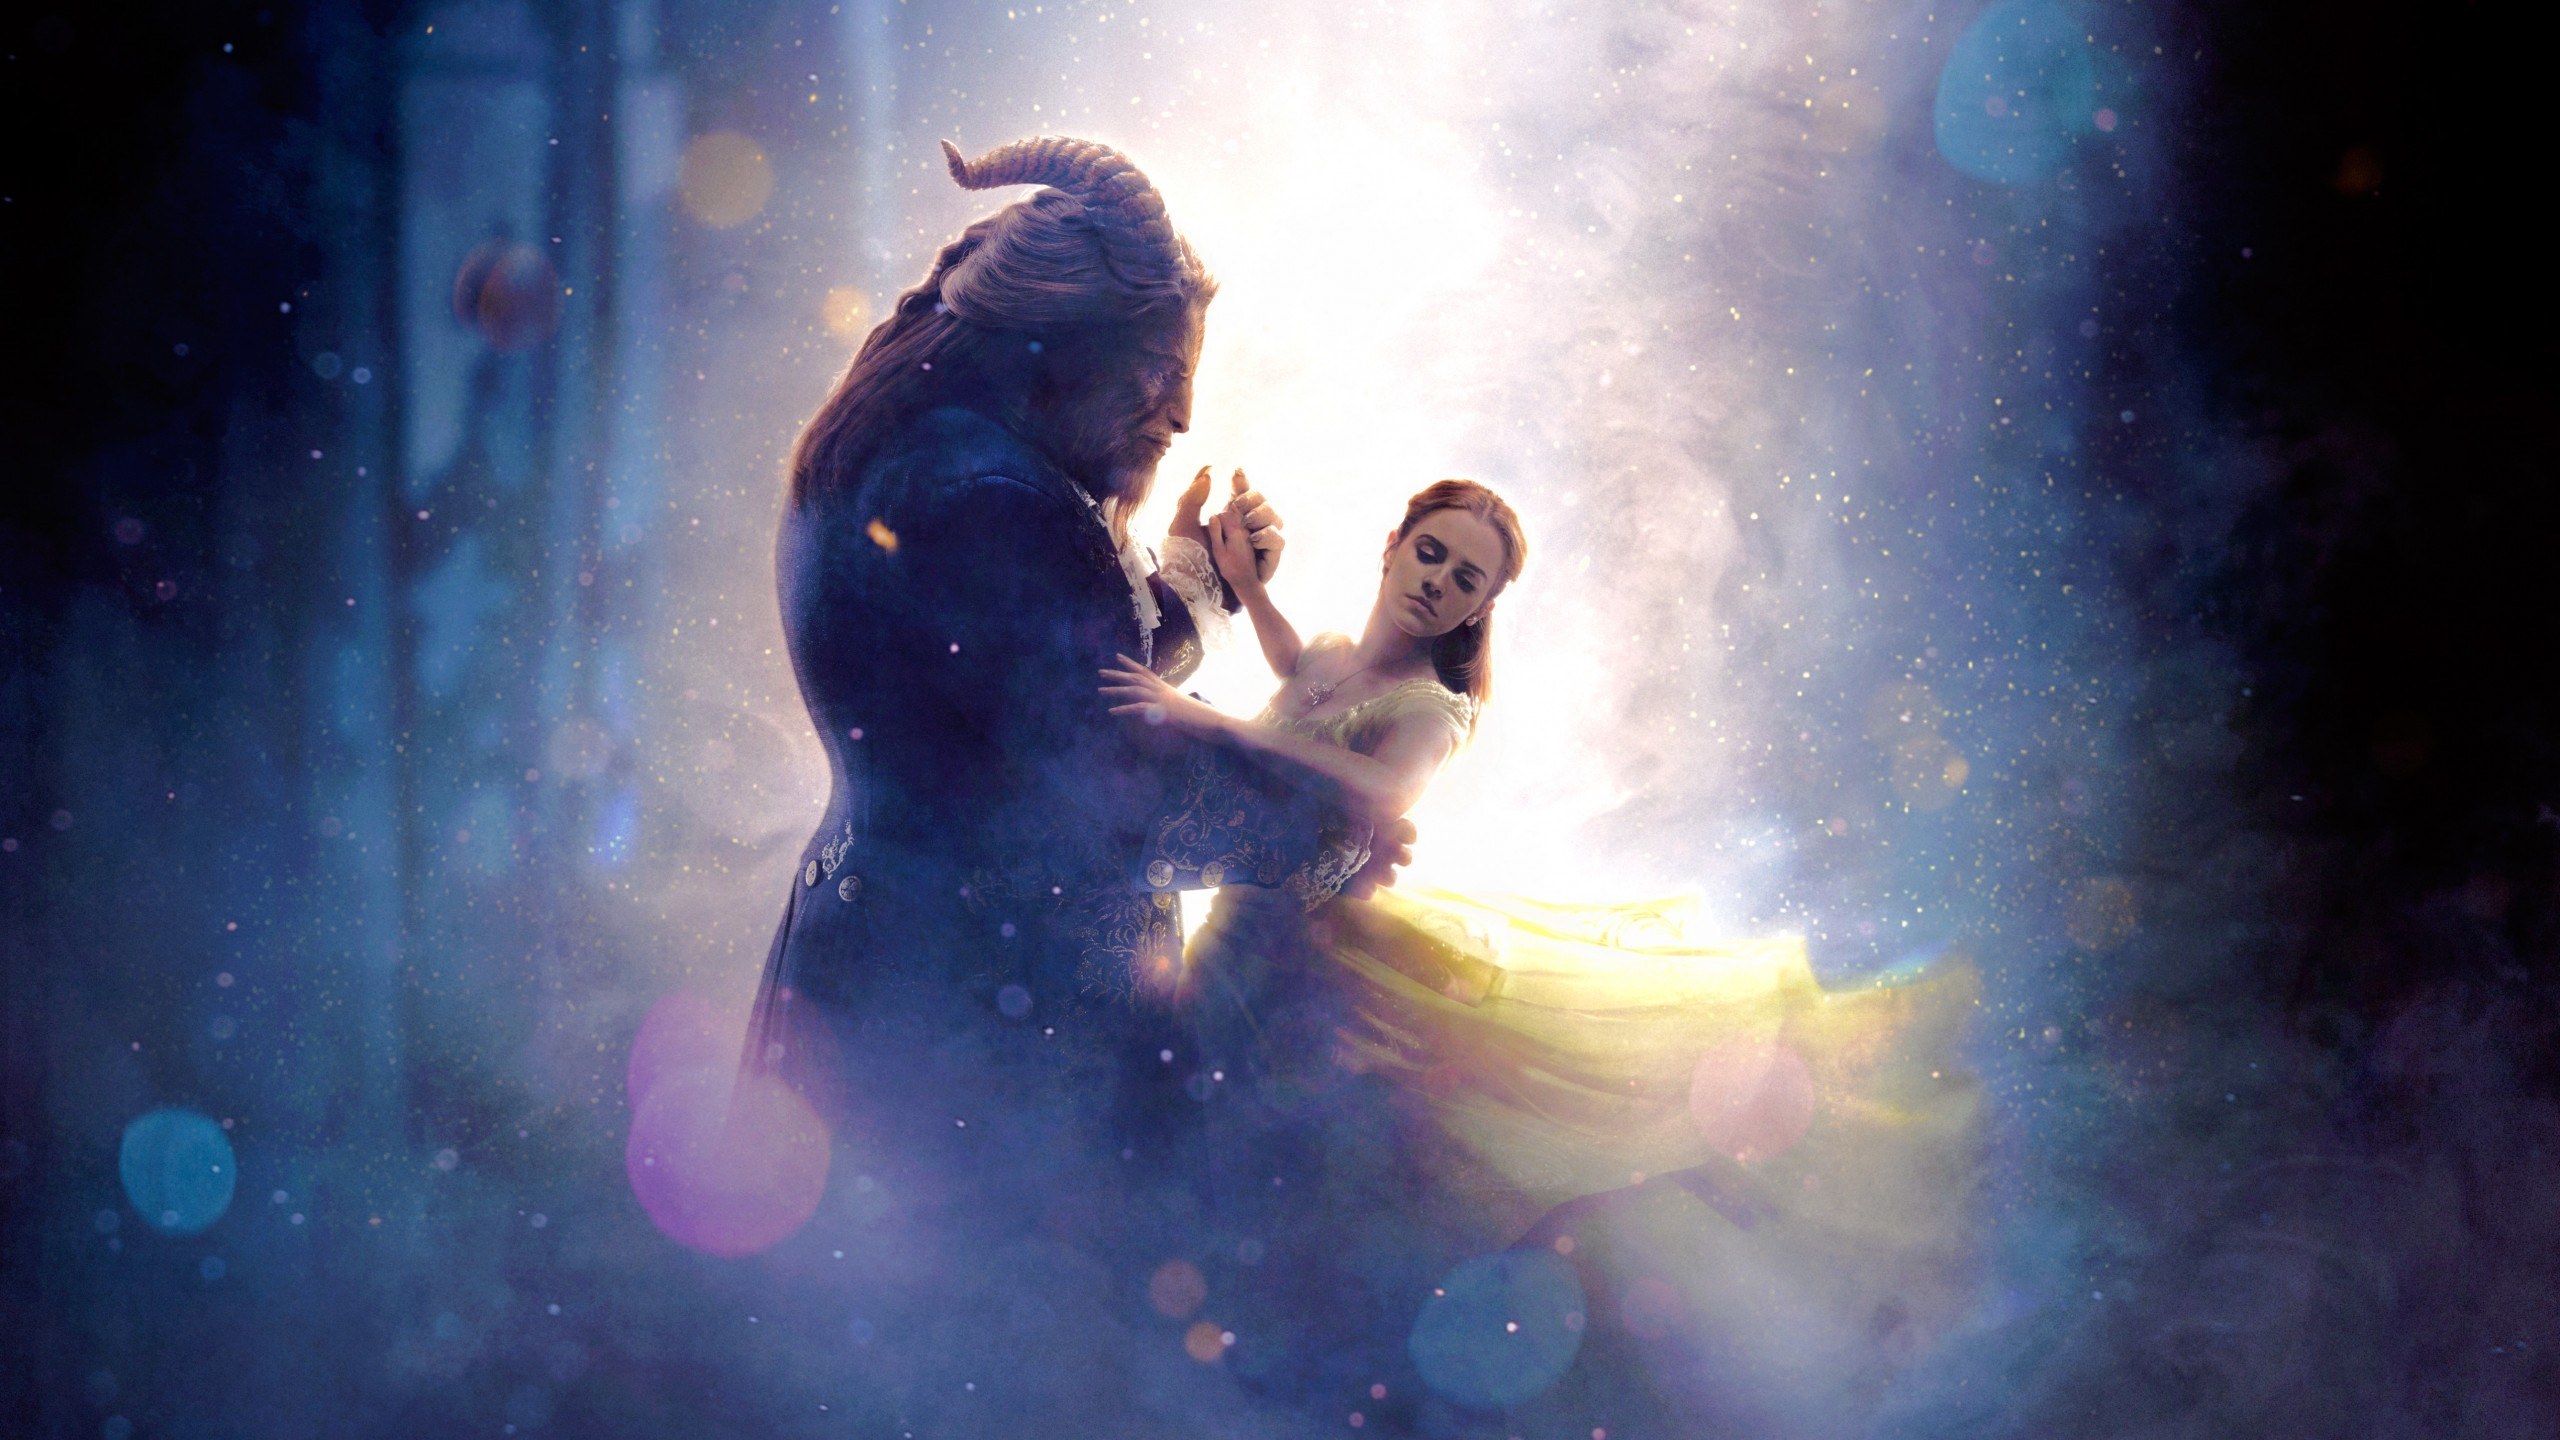 Beauty and the Beast wallpaper ·① Download free full HD ...